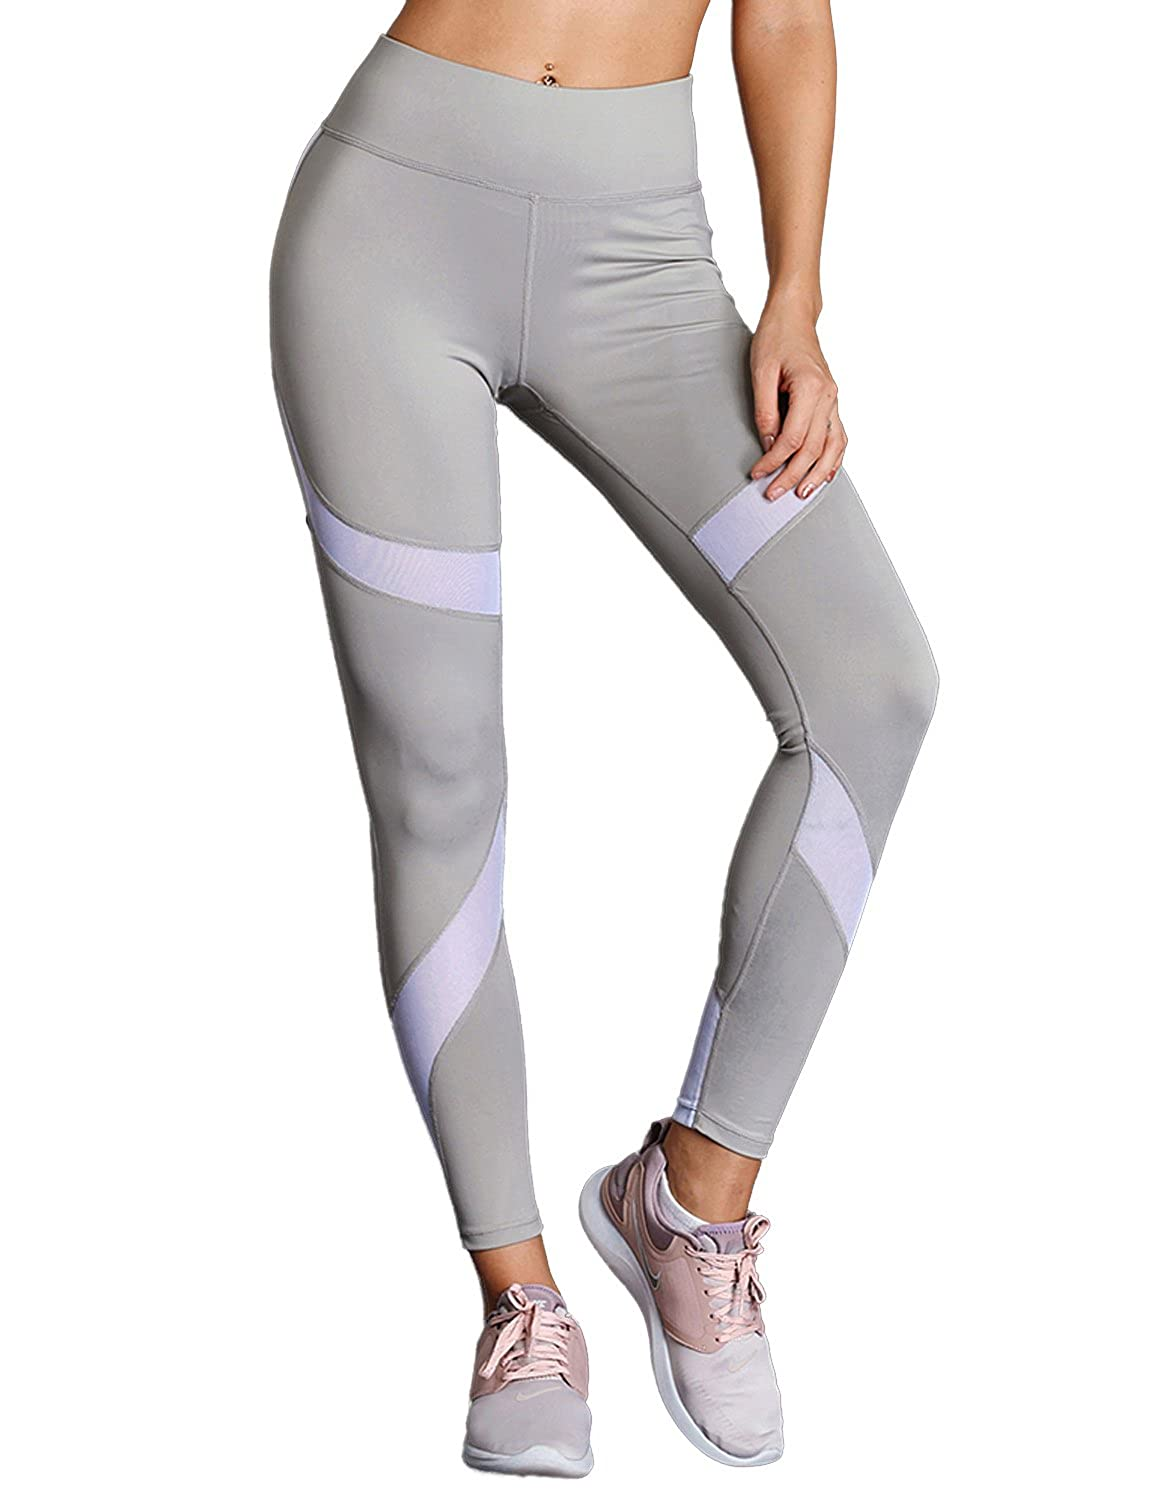 791705cf9f8770 Women\'s mesh workout legging pants are designed with high waist and wide  waistband, which controls your curves and streamlines your shape.